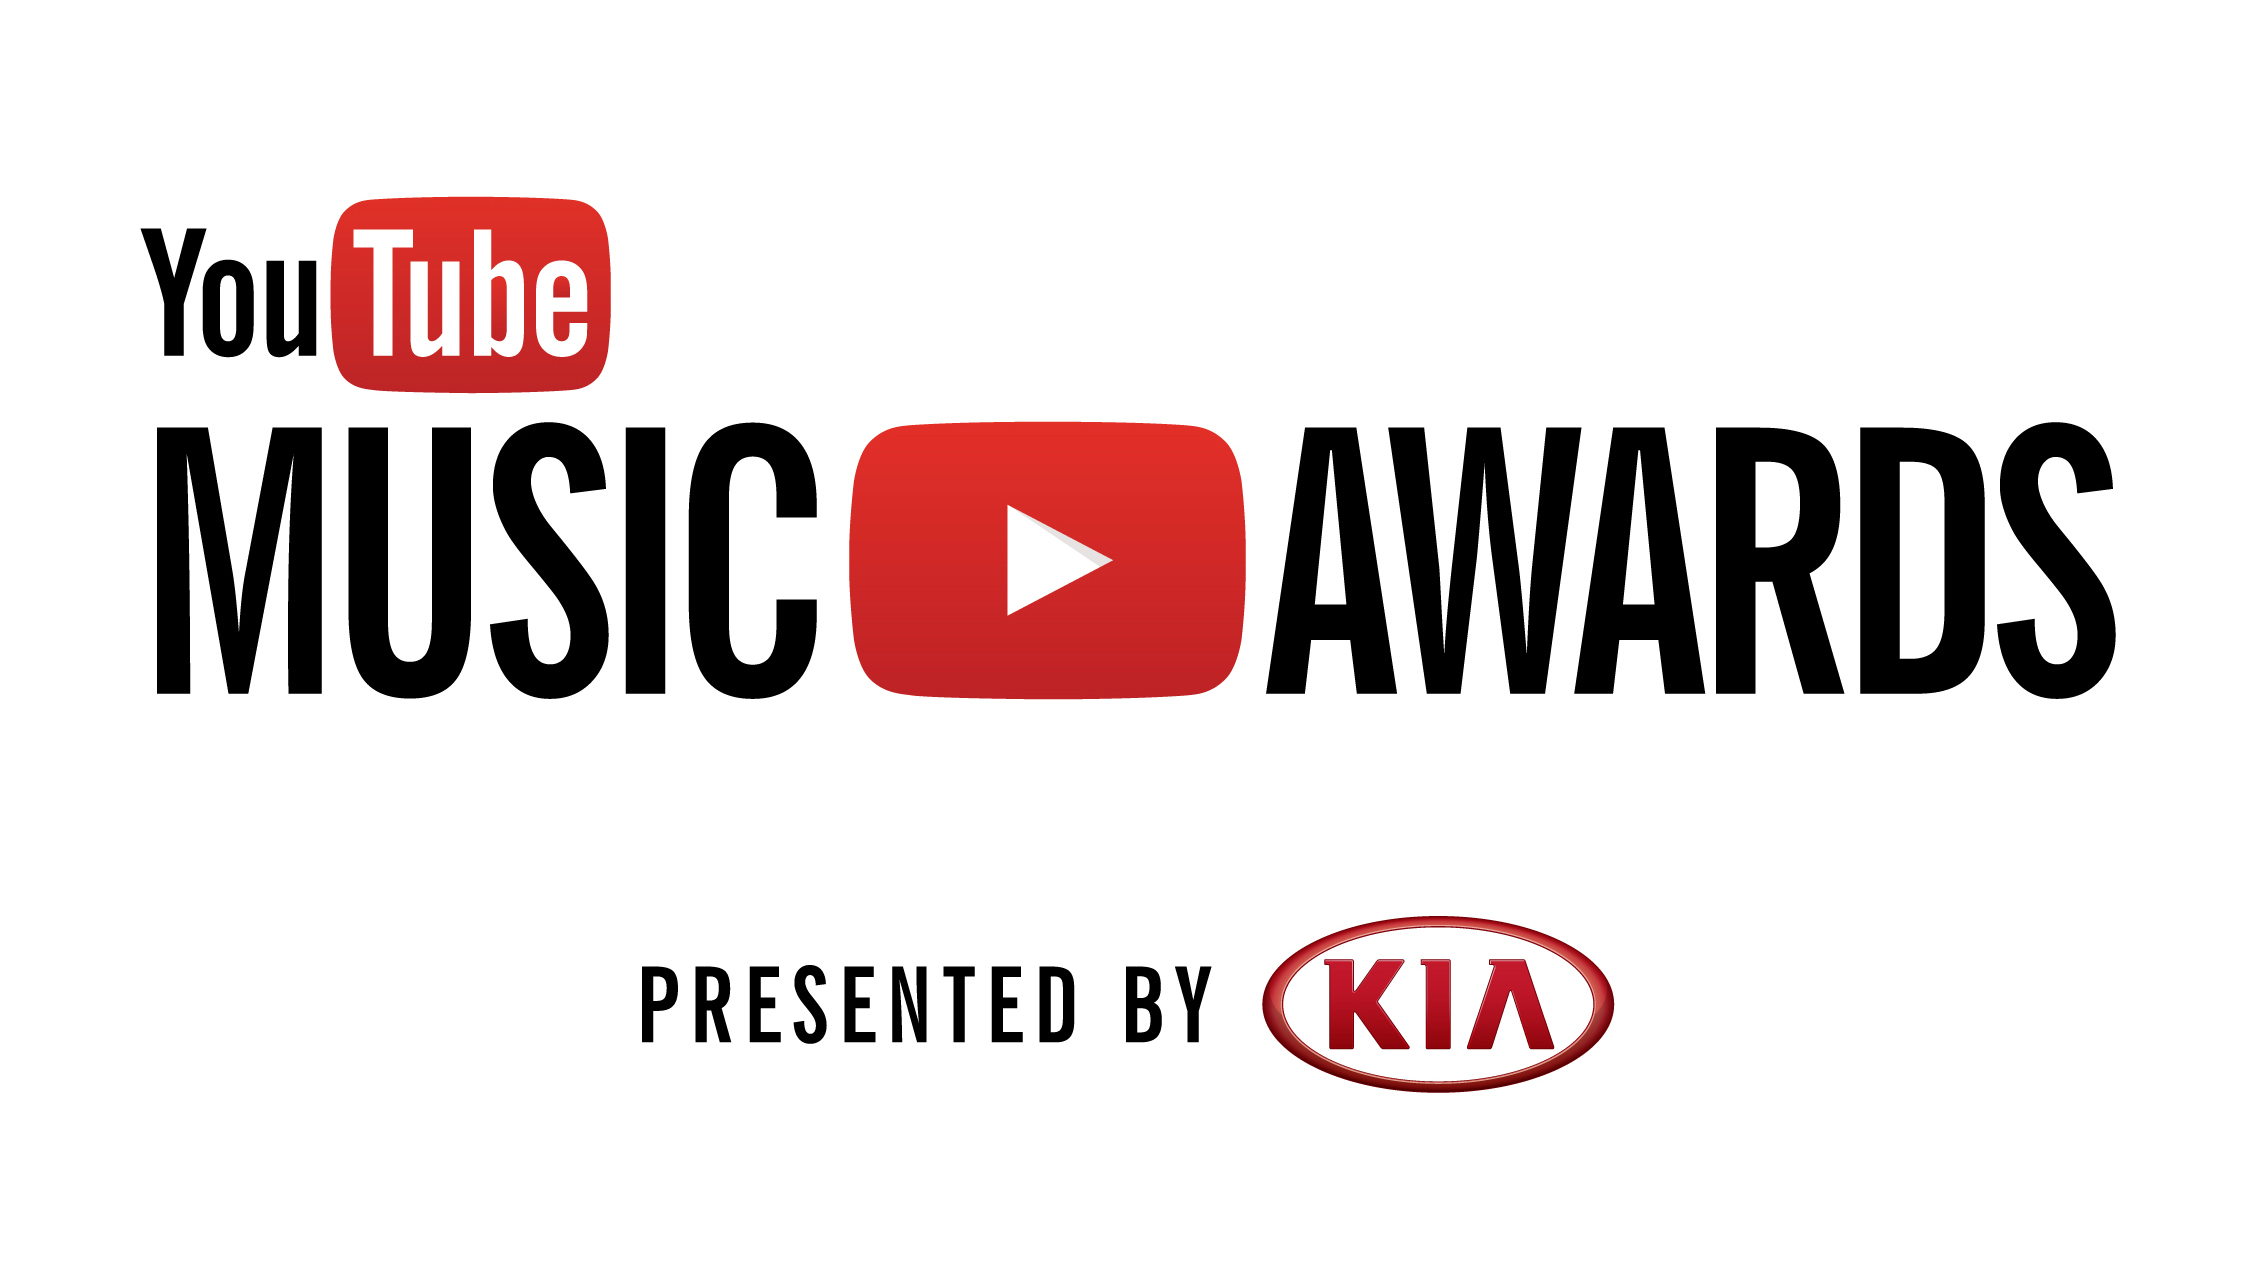 Featured image for YouTube Awards: THE WINNERS [List]